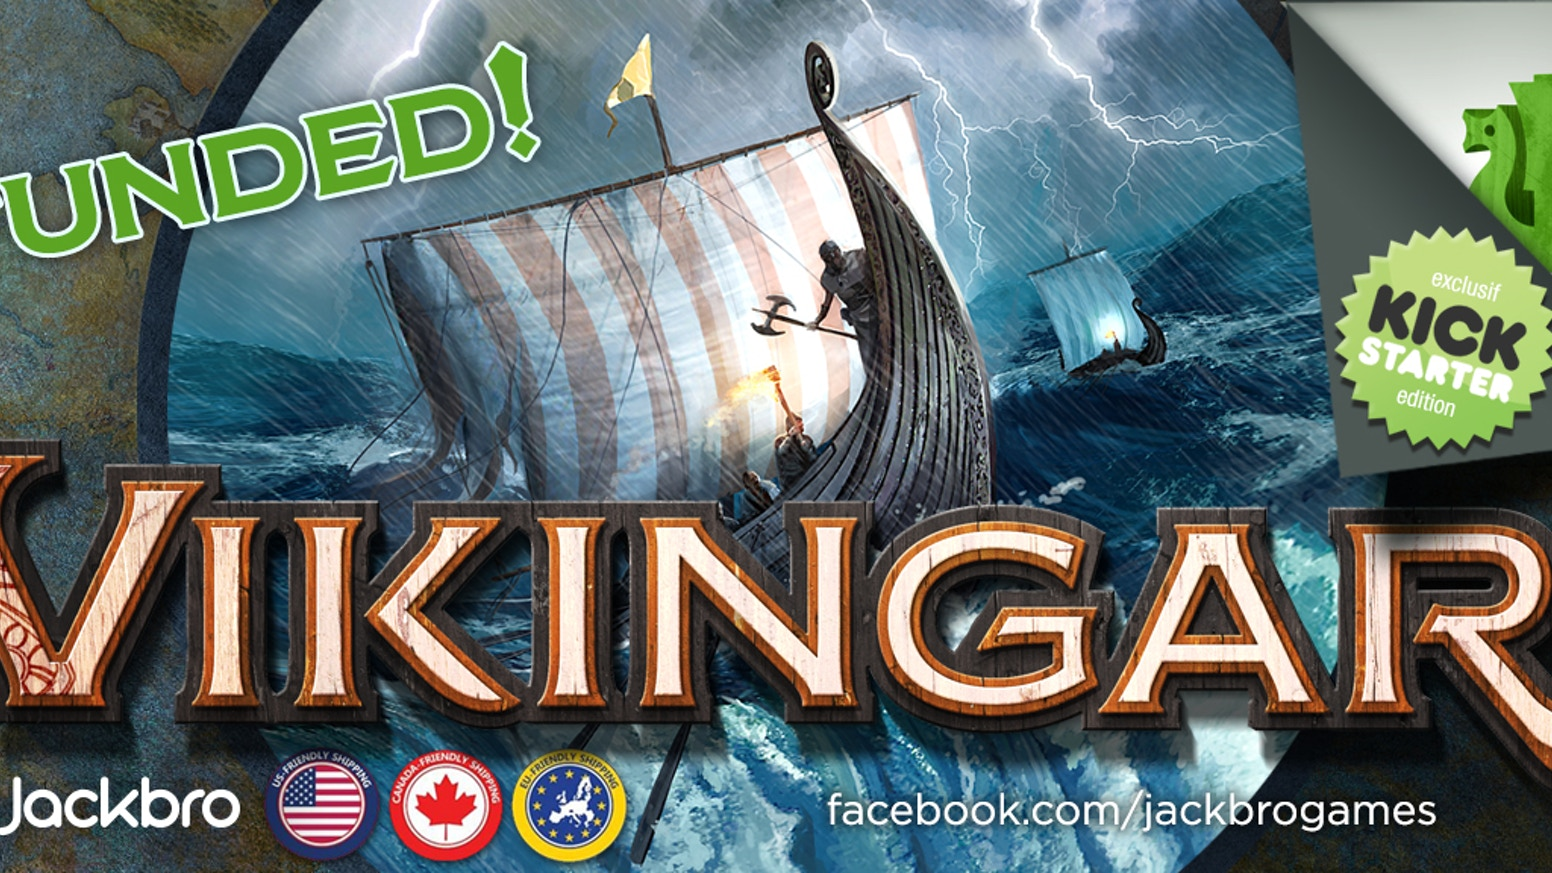 vikingar conquest of the world exploration boardgame by jackbro